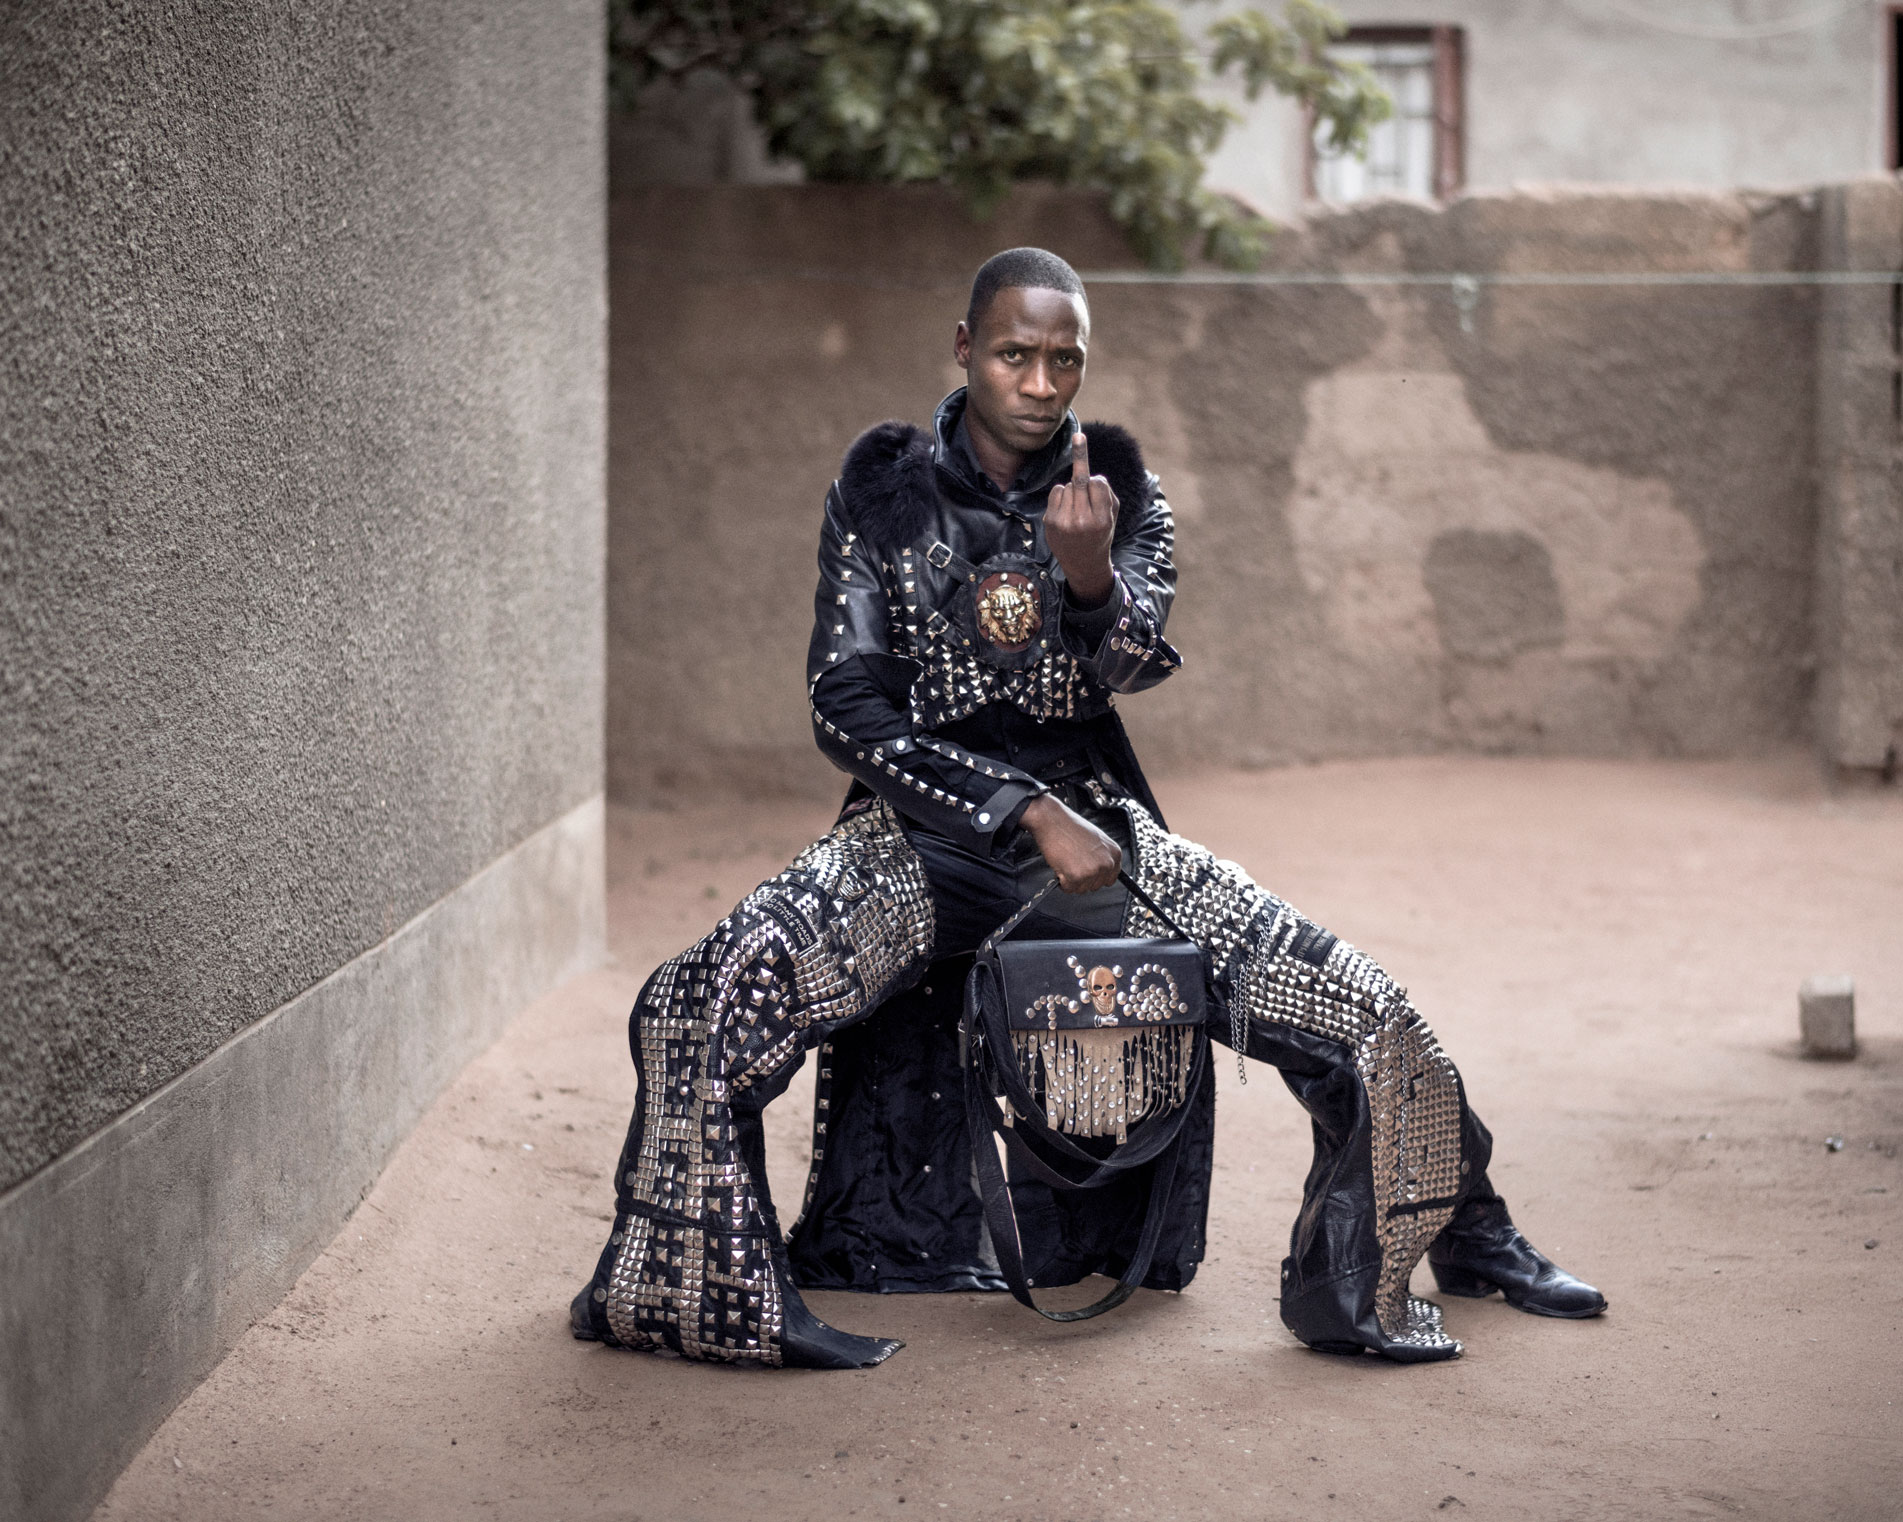 'Desert Super Power', a 26-year-old electrician, designs clothes for many of his peers in Botswana's metal scene.